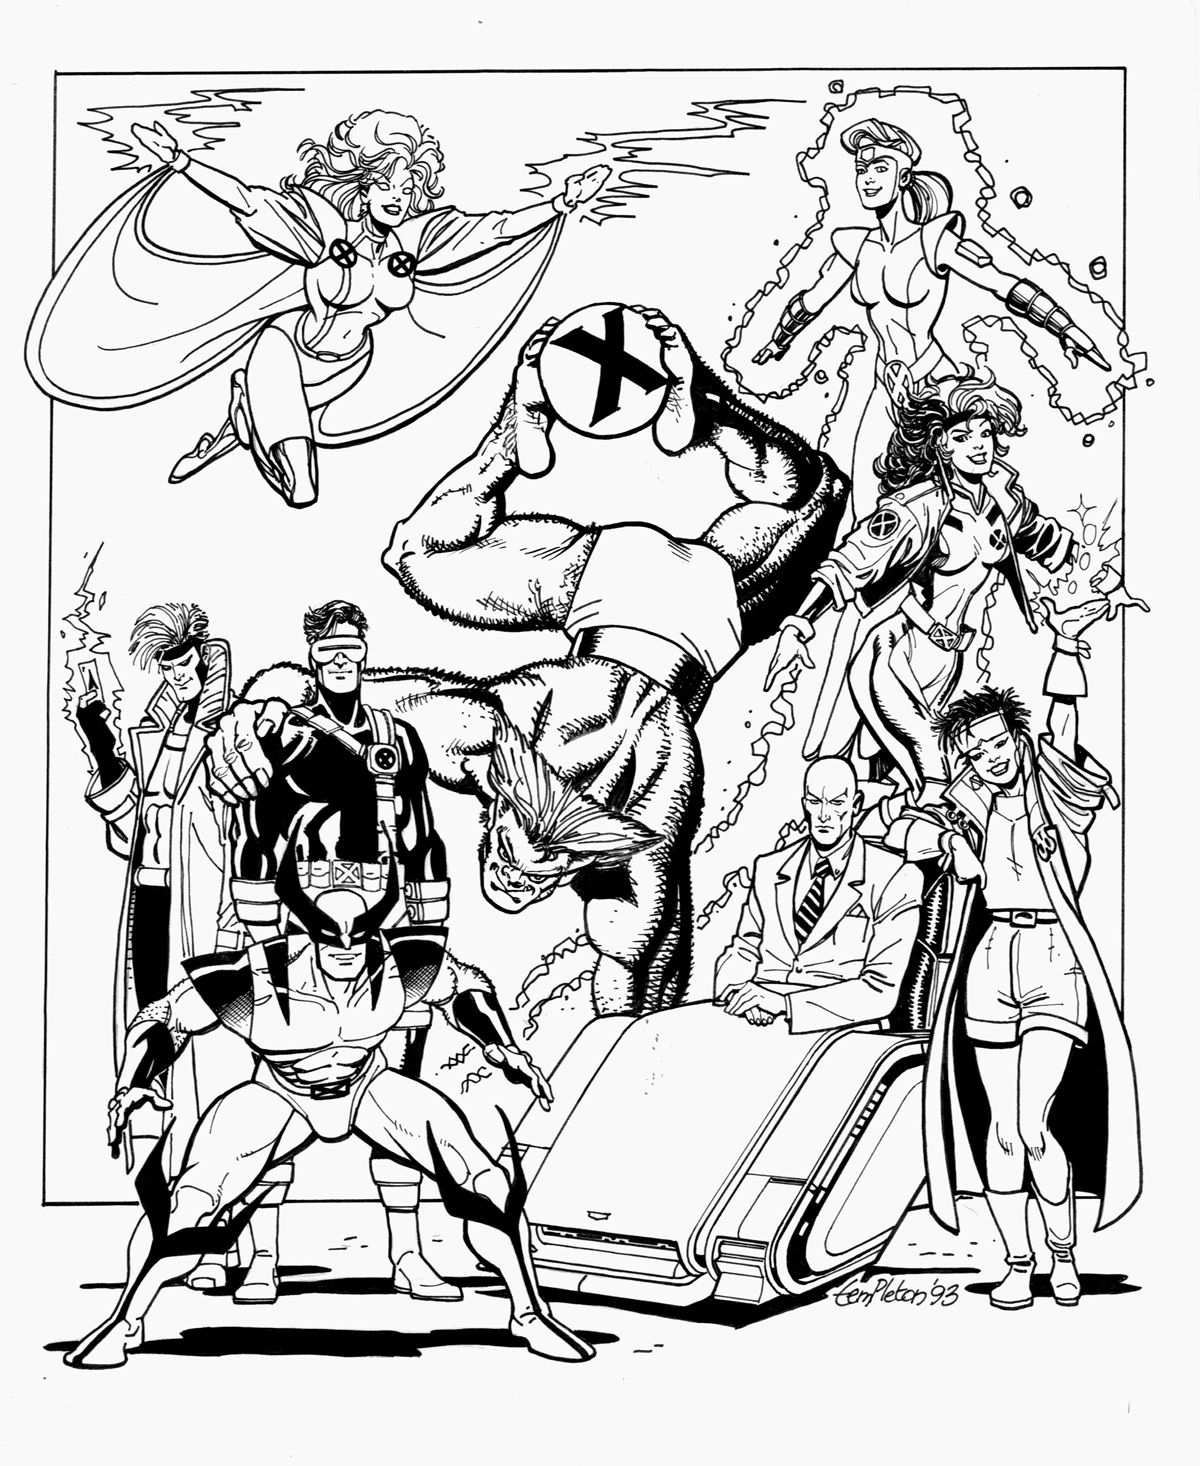 X Men Superheroes Books And Comics Coloring Pages For Adults